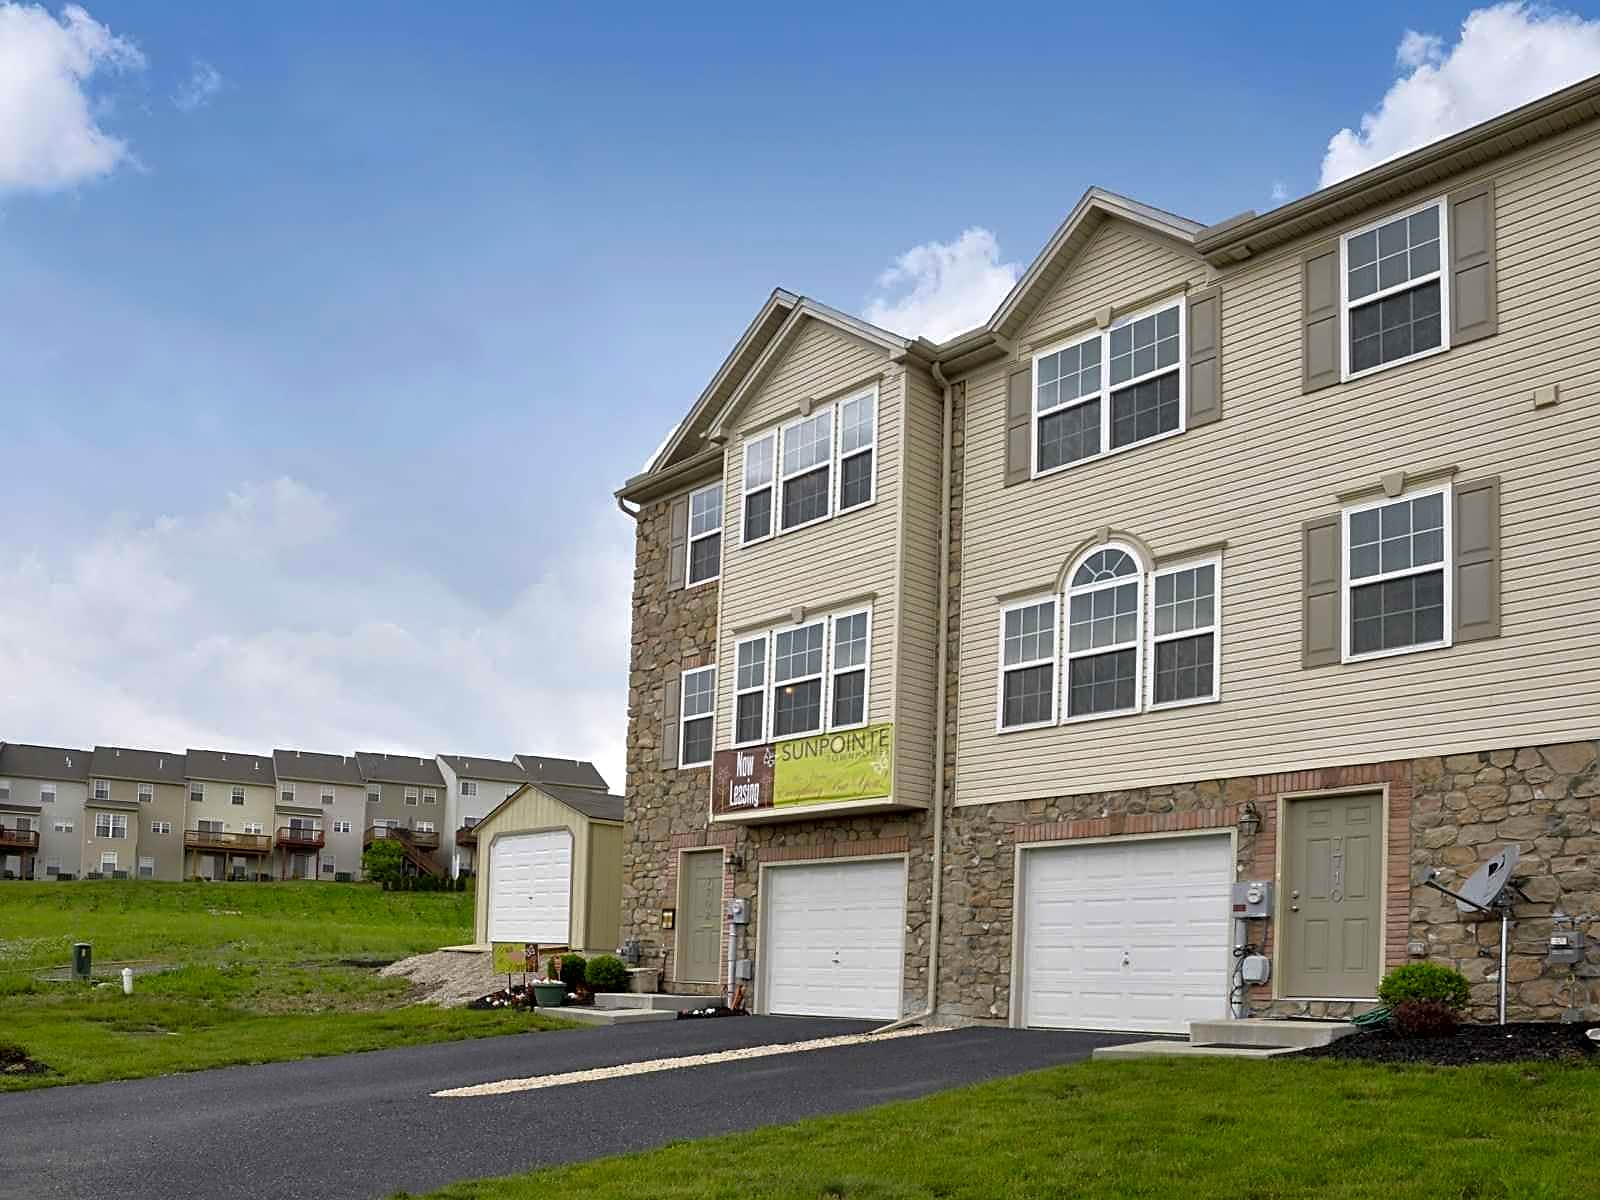 Apartments Near Lebanon Valley Sunpointe Townhomes for Lebanon Valley College Students in Annville, PA